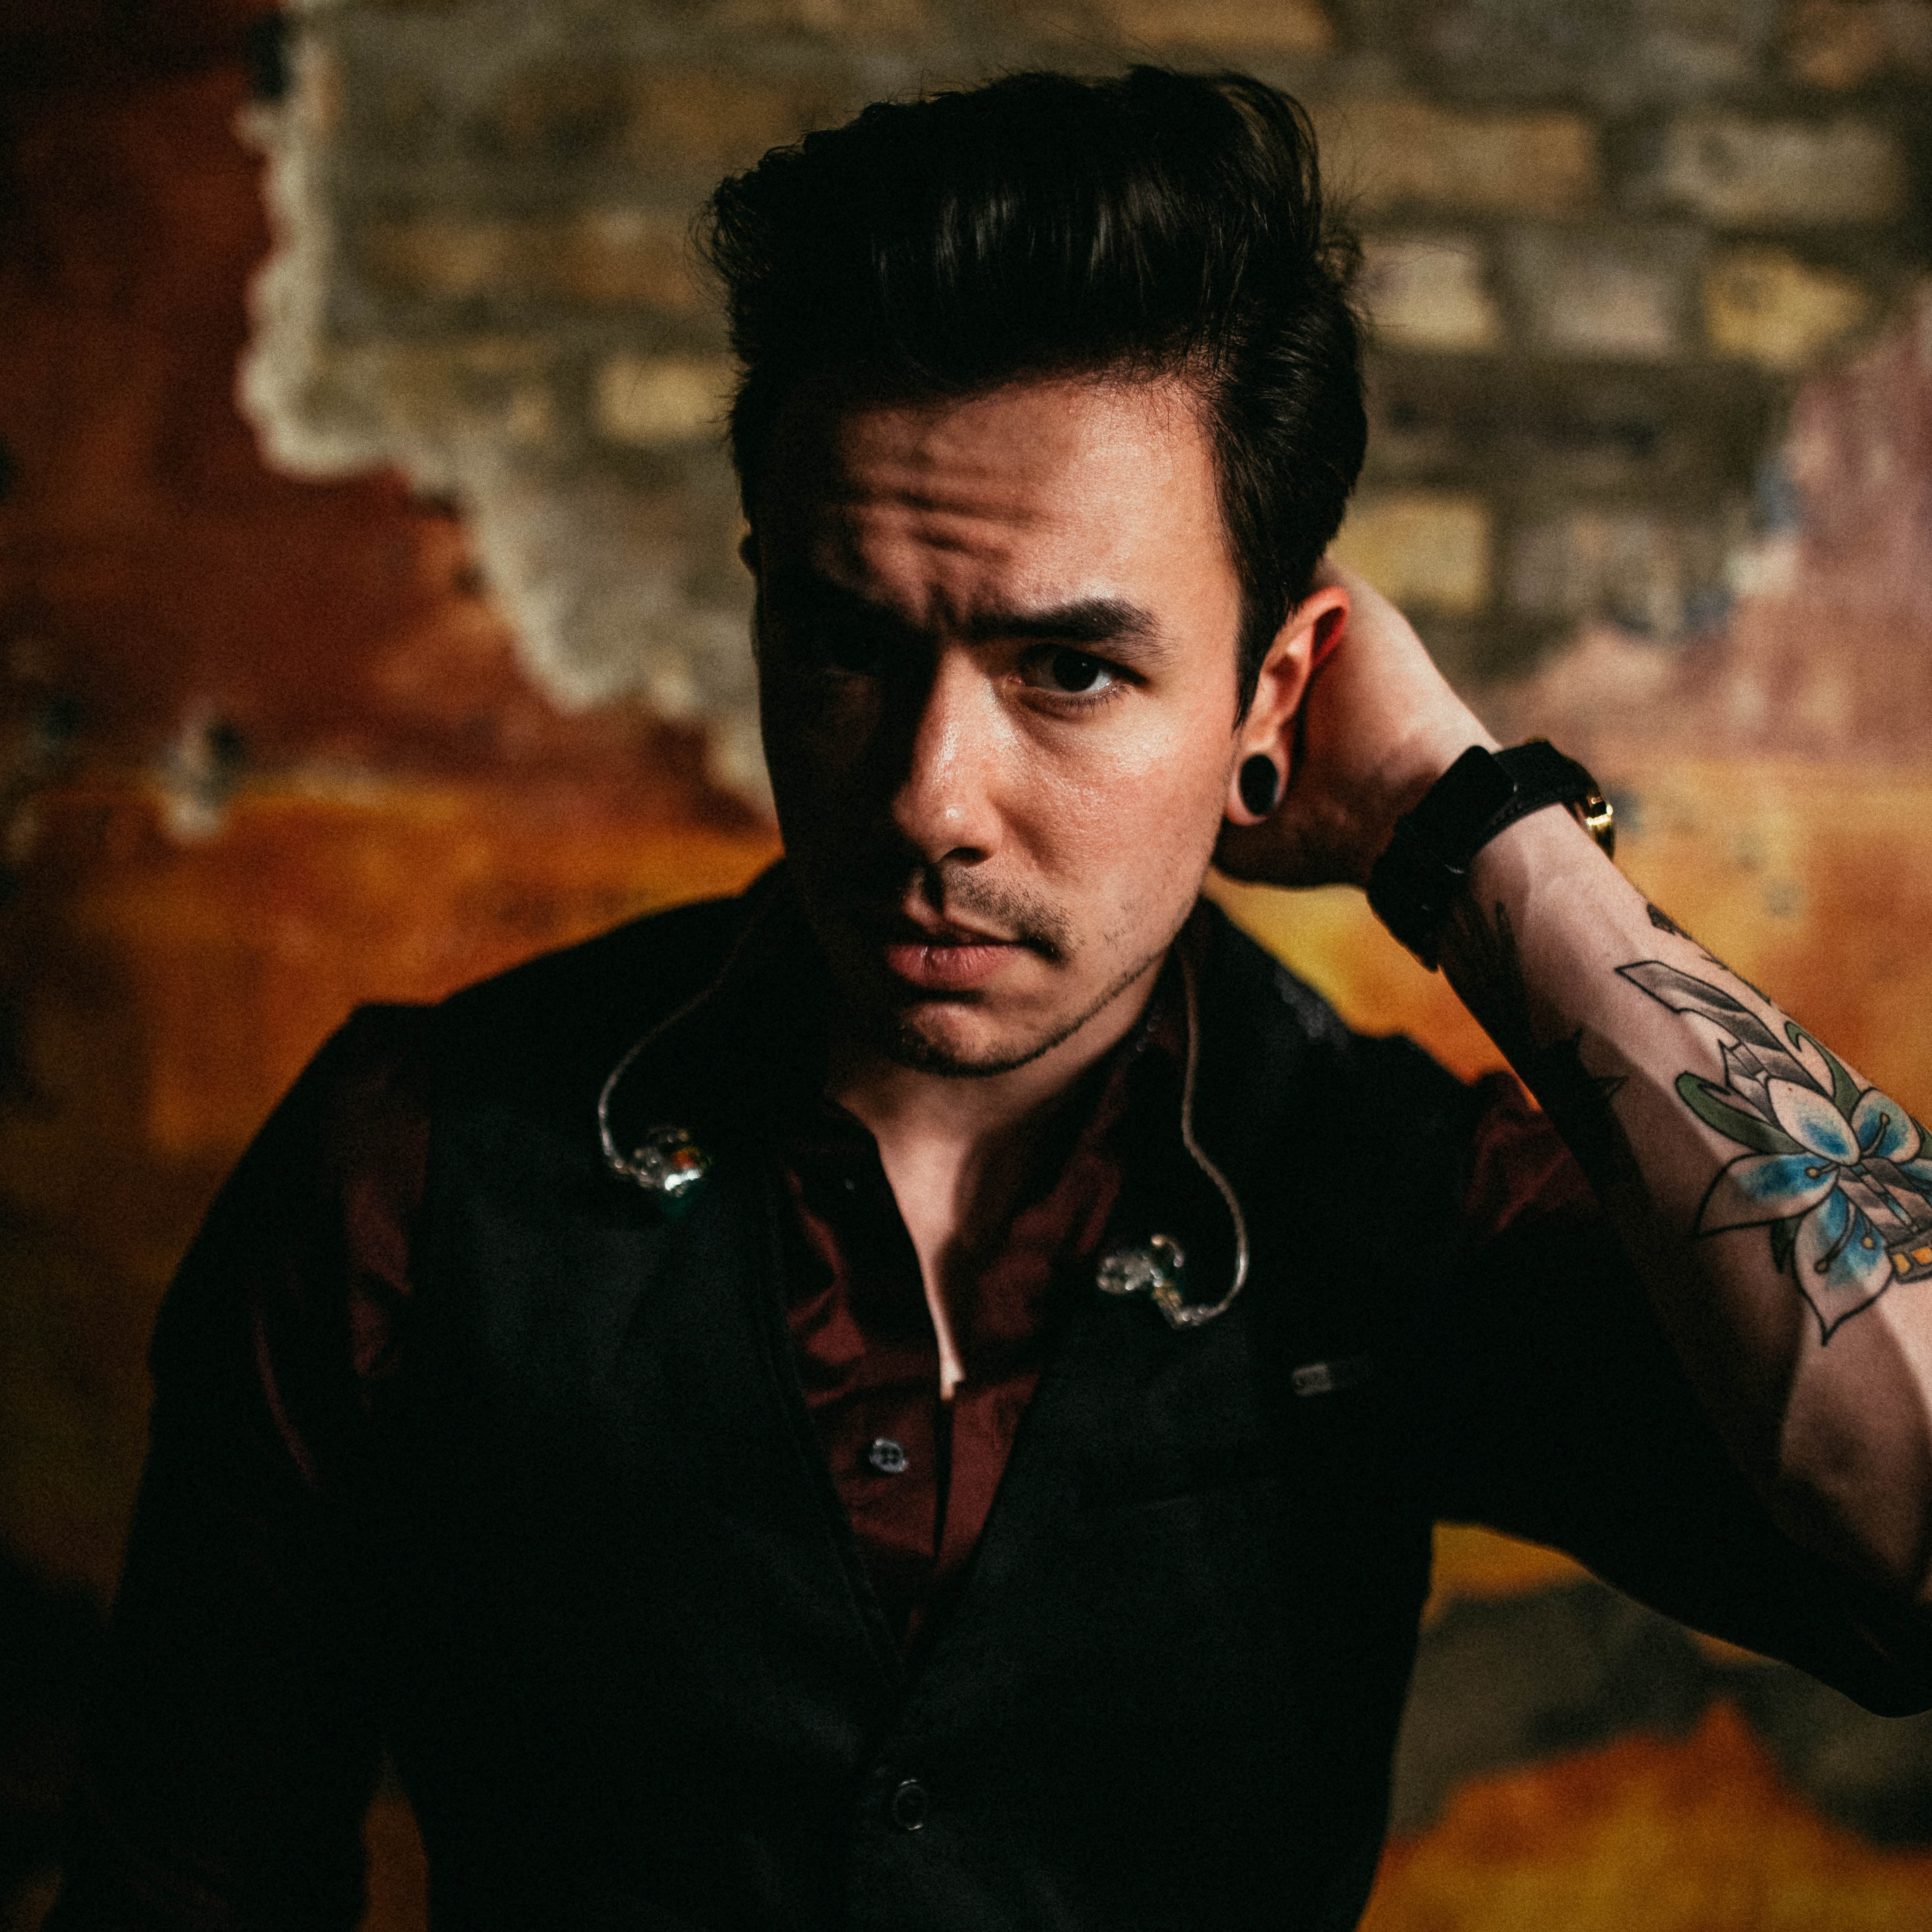 Mon 4/12 - NateWantsToBattle + Vespera @ Hard Rock Cafe Boston (All Ages Show!) - Rescheduled from 9/6 - All tickets honored